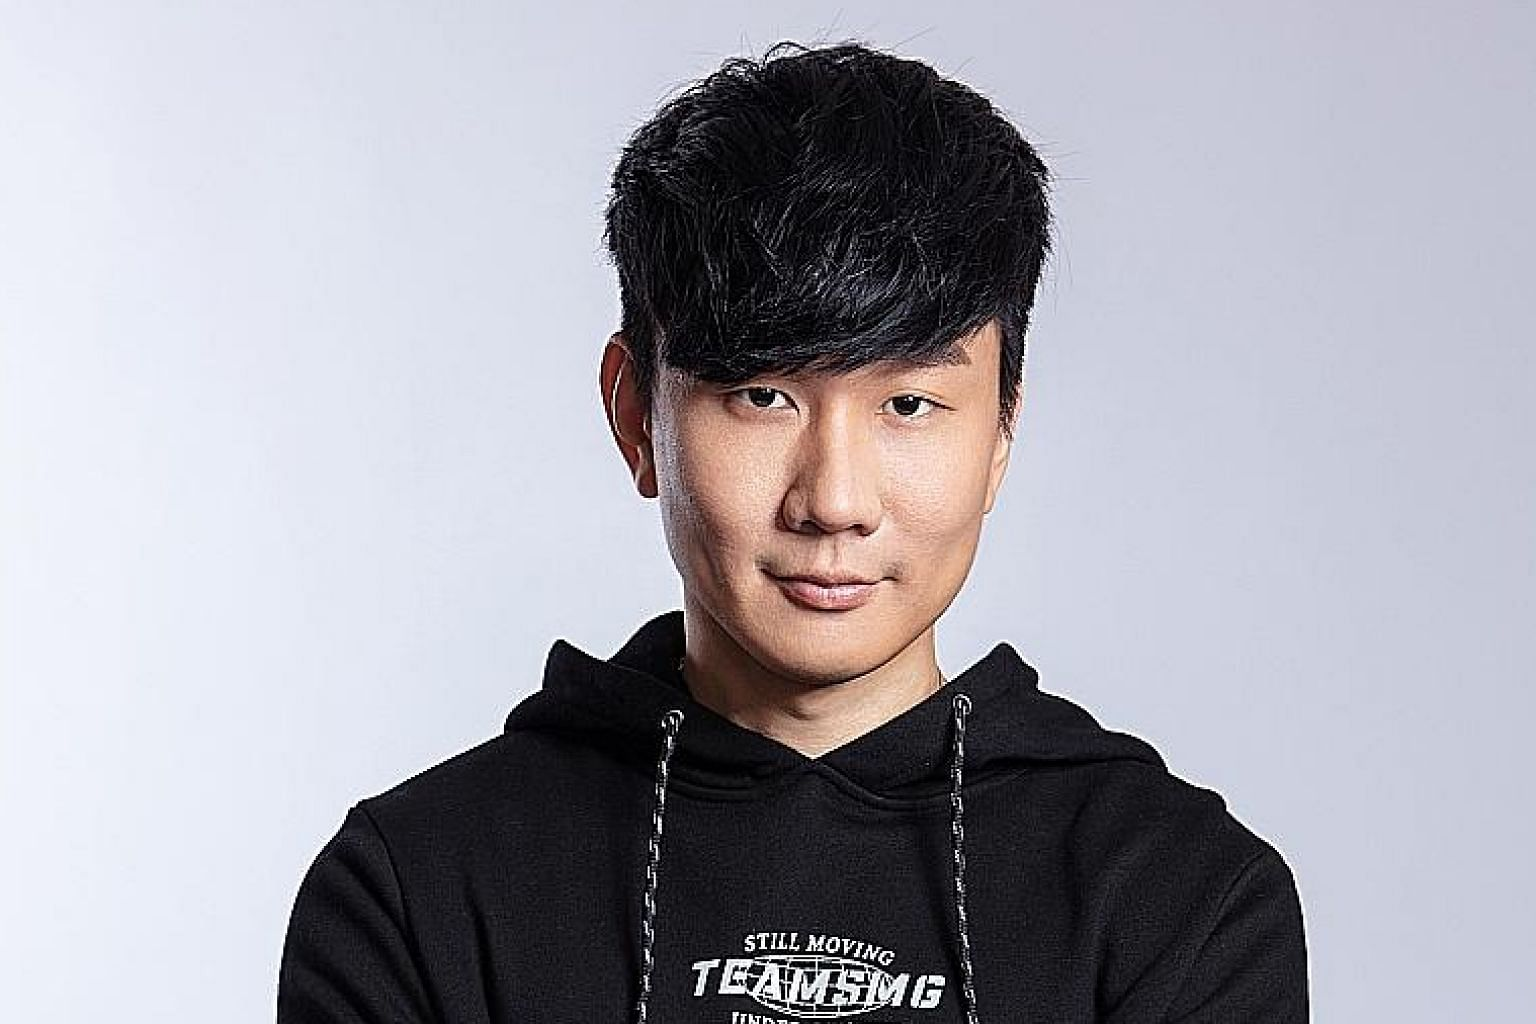 Mandopop singer JJ Lin (left) has formed a team that will compete in first-person shooter game Valorant.